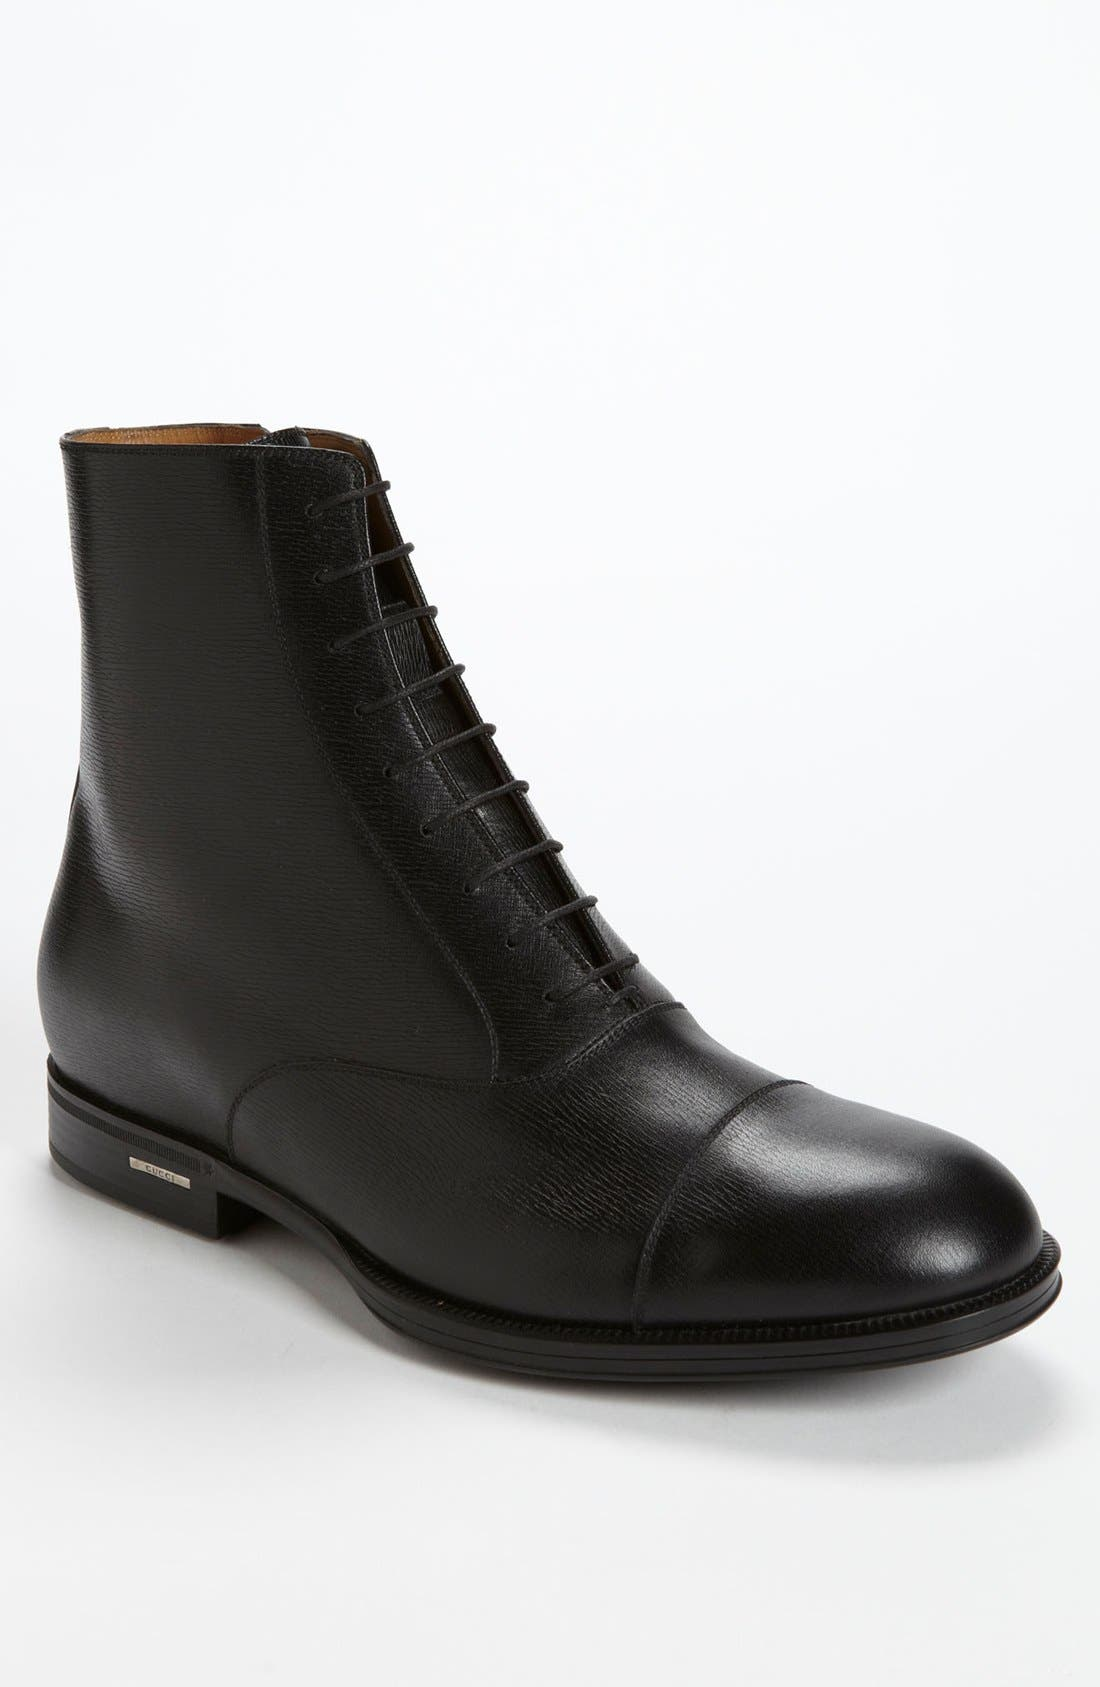 Main Image - Gucci 'Handir' Cap Toe Boot